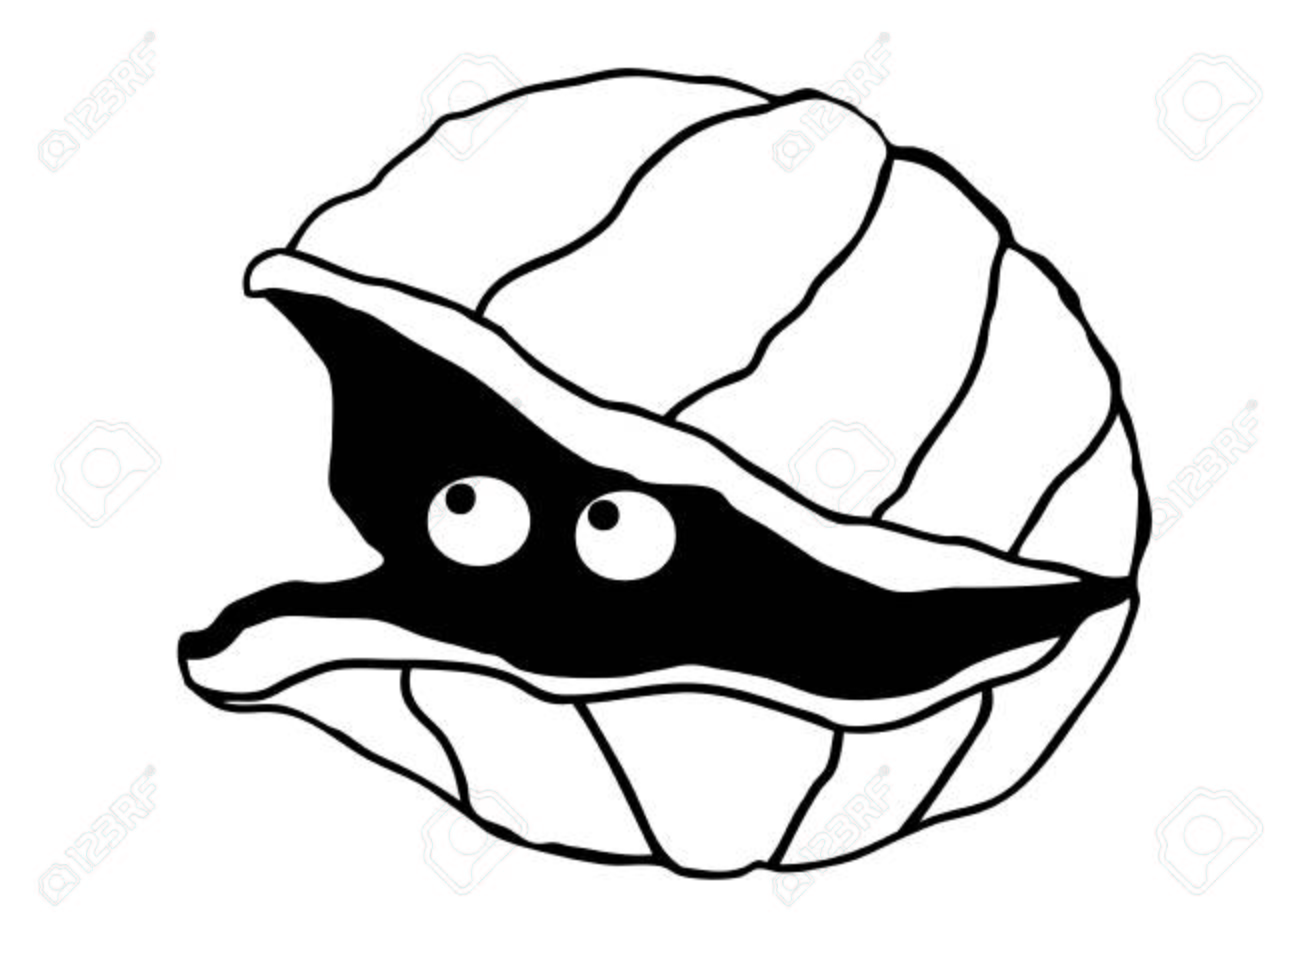 Cute Simple Line Art : Cute illustration of a simple clam with eyes look out the